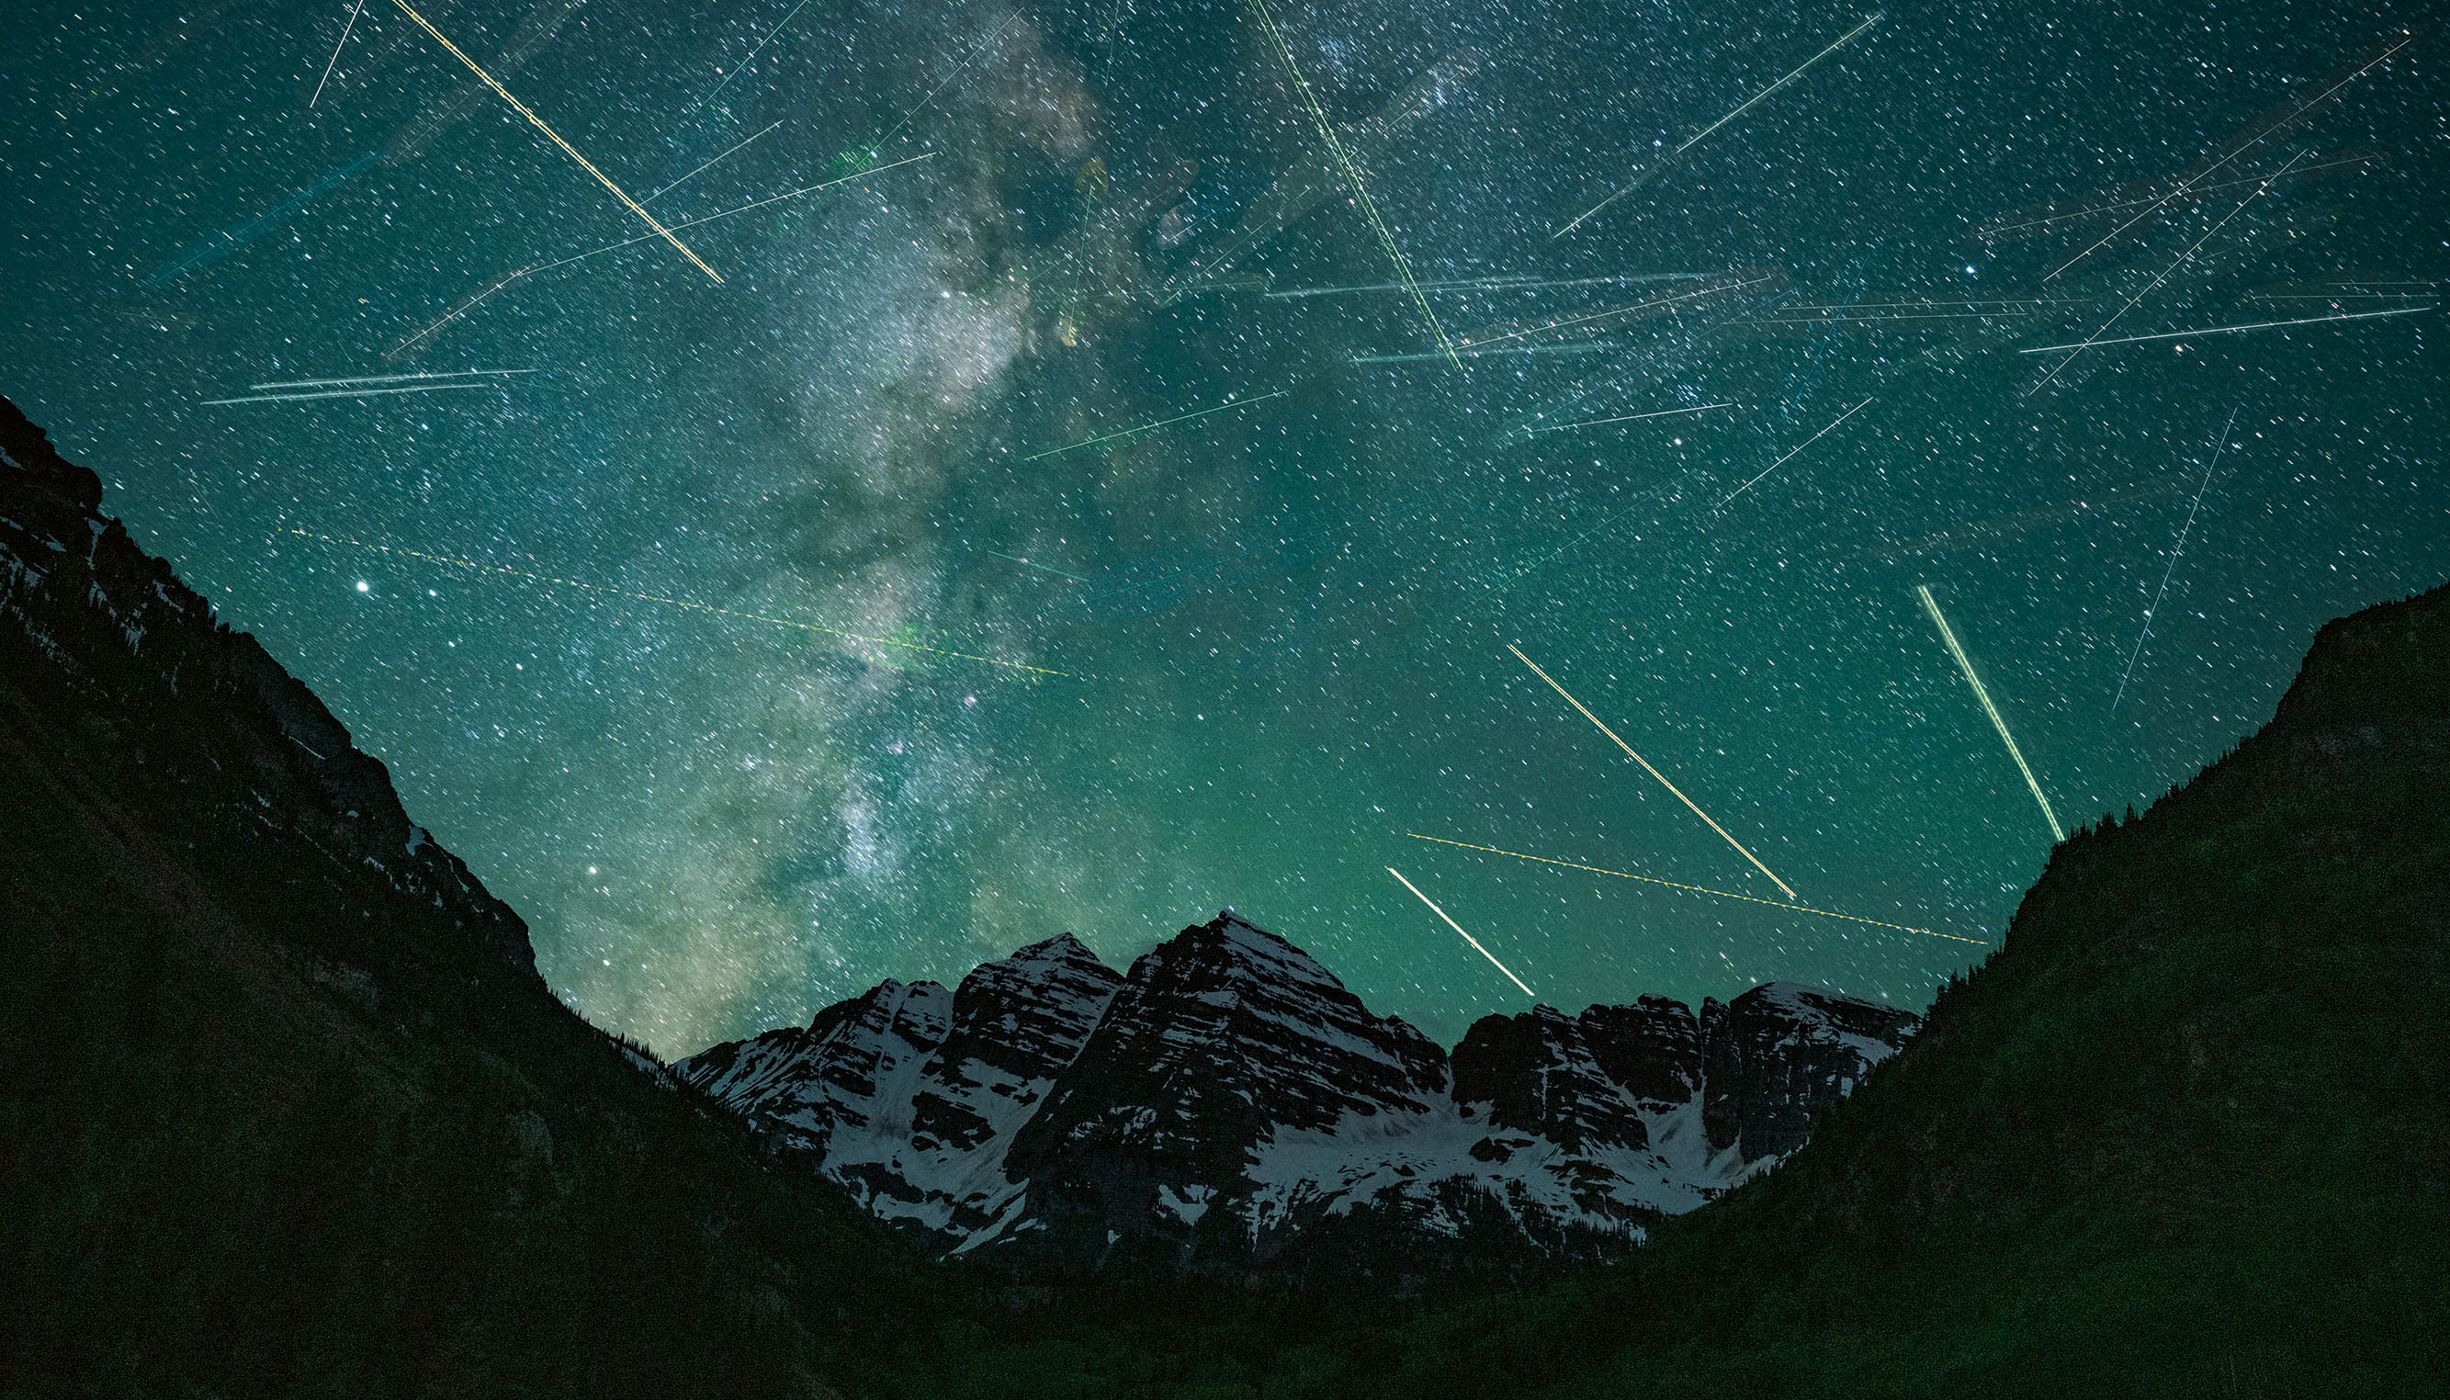 blue night sky with thousands of blurred stars over dark mountains.